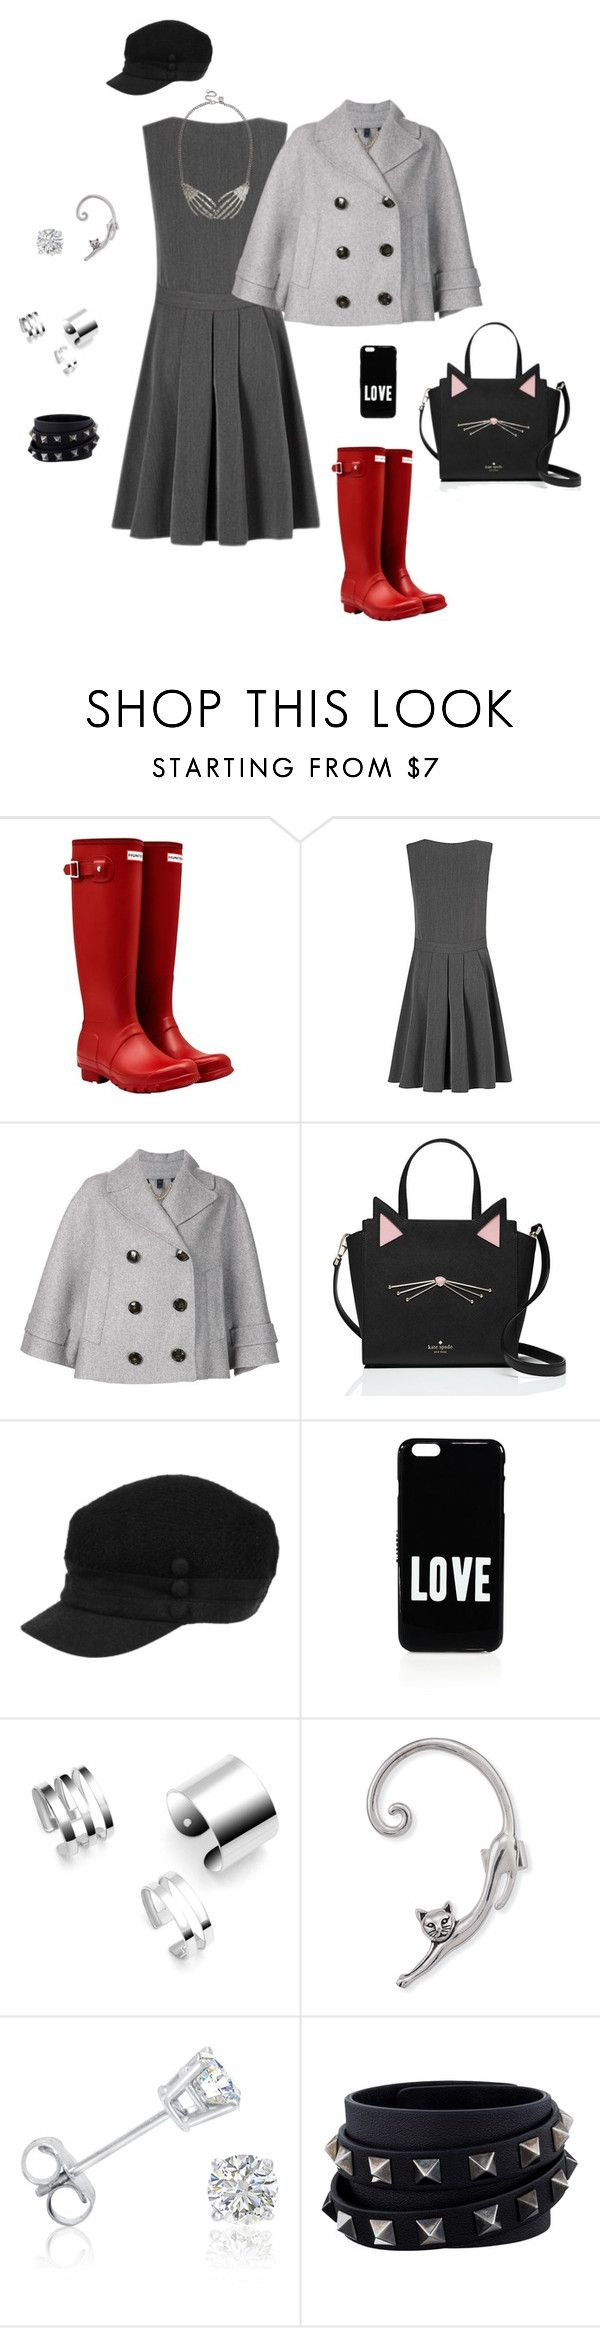 Noite de chuva! by simone-silva-s2 on Polyvore featuring moda, George, Burberry, Hunter, Kate Spade, Valentino, Amanda Rose Collection and Givenchy